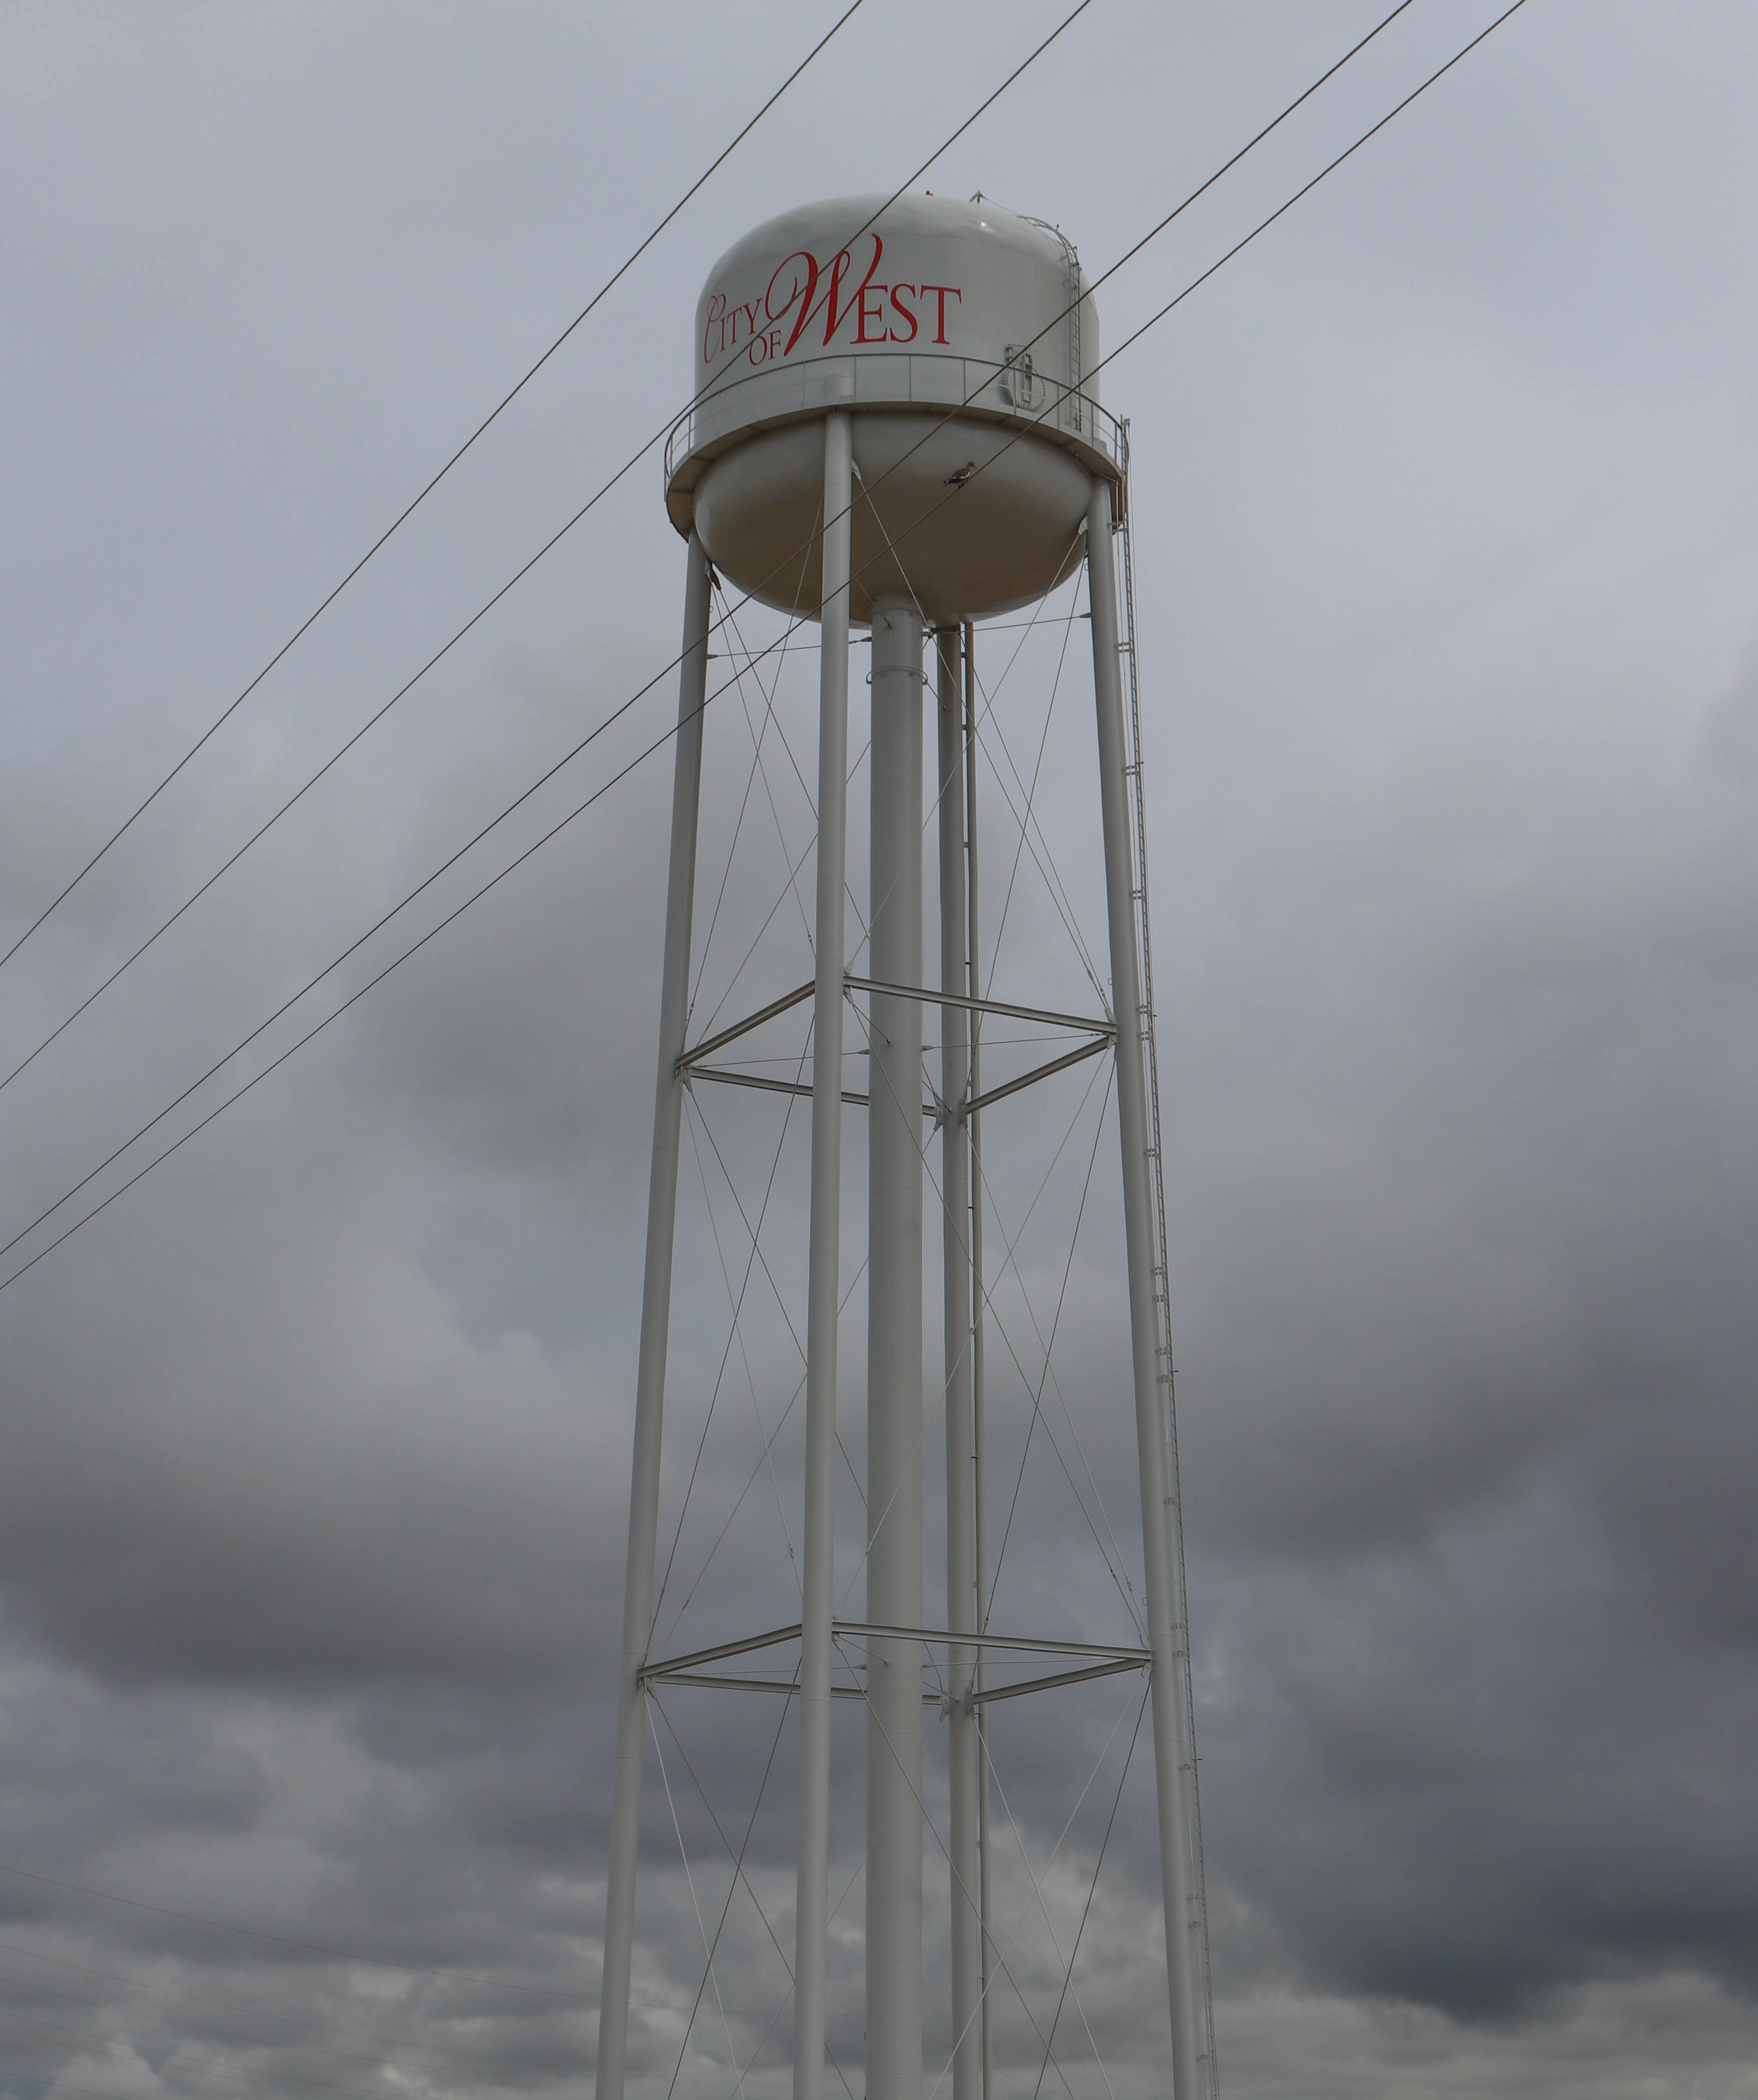 West, TX Water Tower